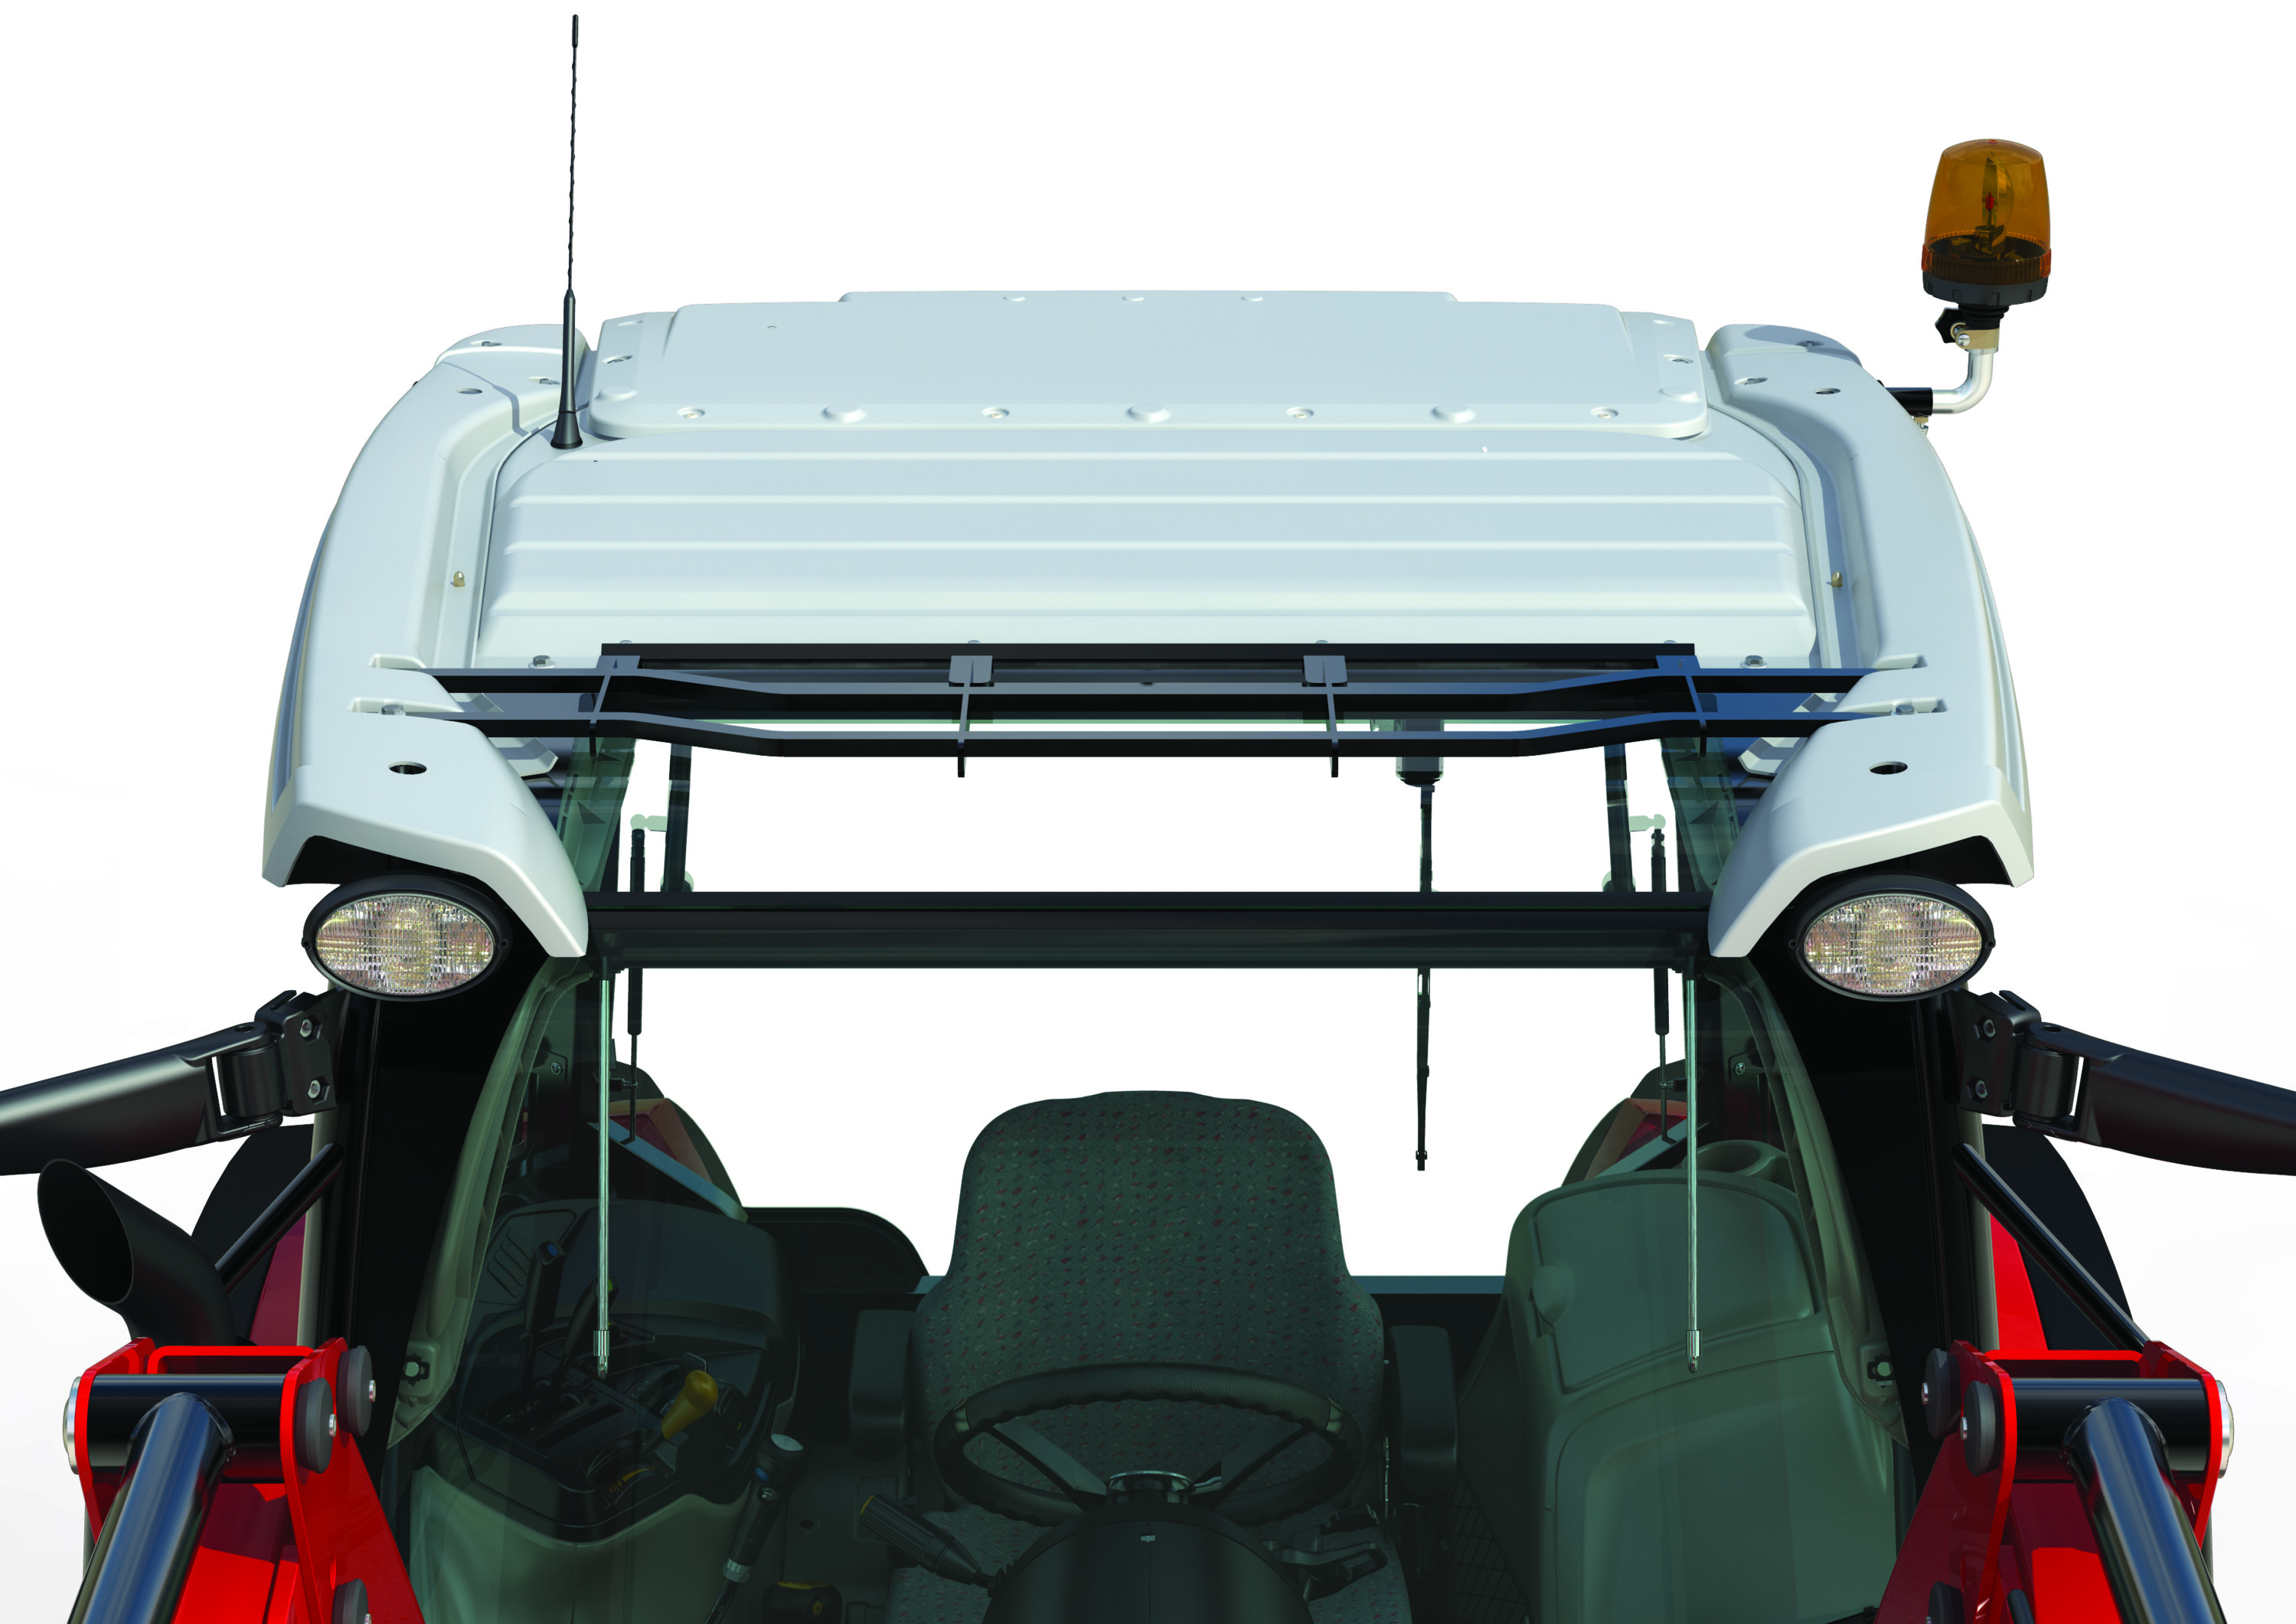 Massey Ferguson Global Series Visioline roof option further improves visibility for loader operations.